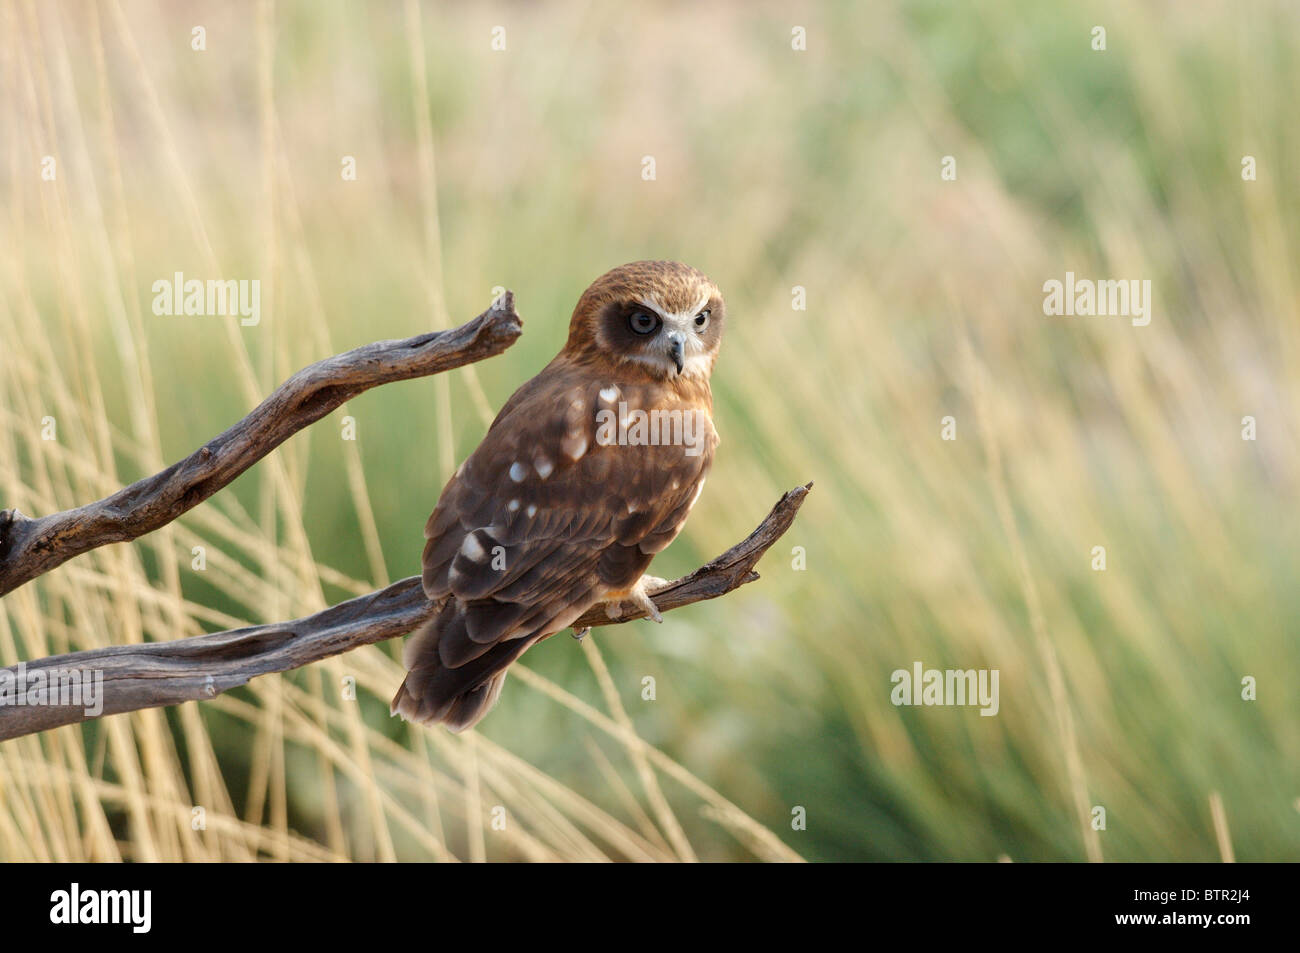 Australia, Alice Springs Desert Park, Owl perching on branch - Stock Image